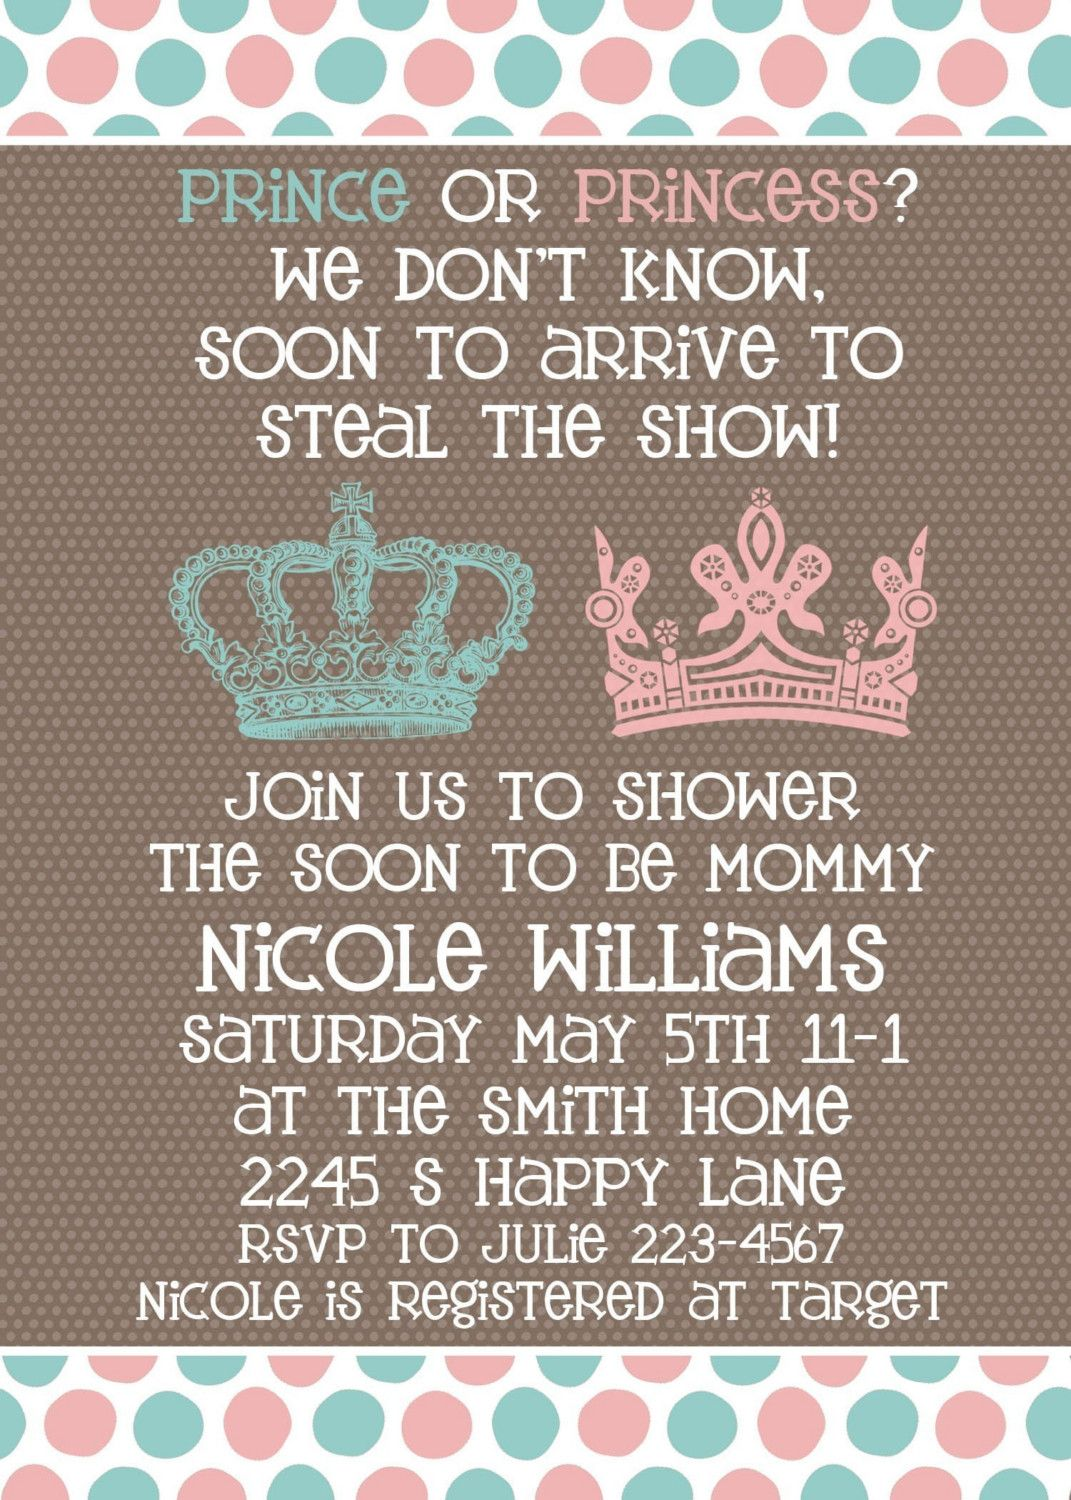 unique homemade baby shower invitation ideas%0A Baby Shower invitation  Neutral Gender Unknown Shower  Prince or  Princess